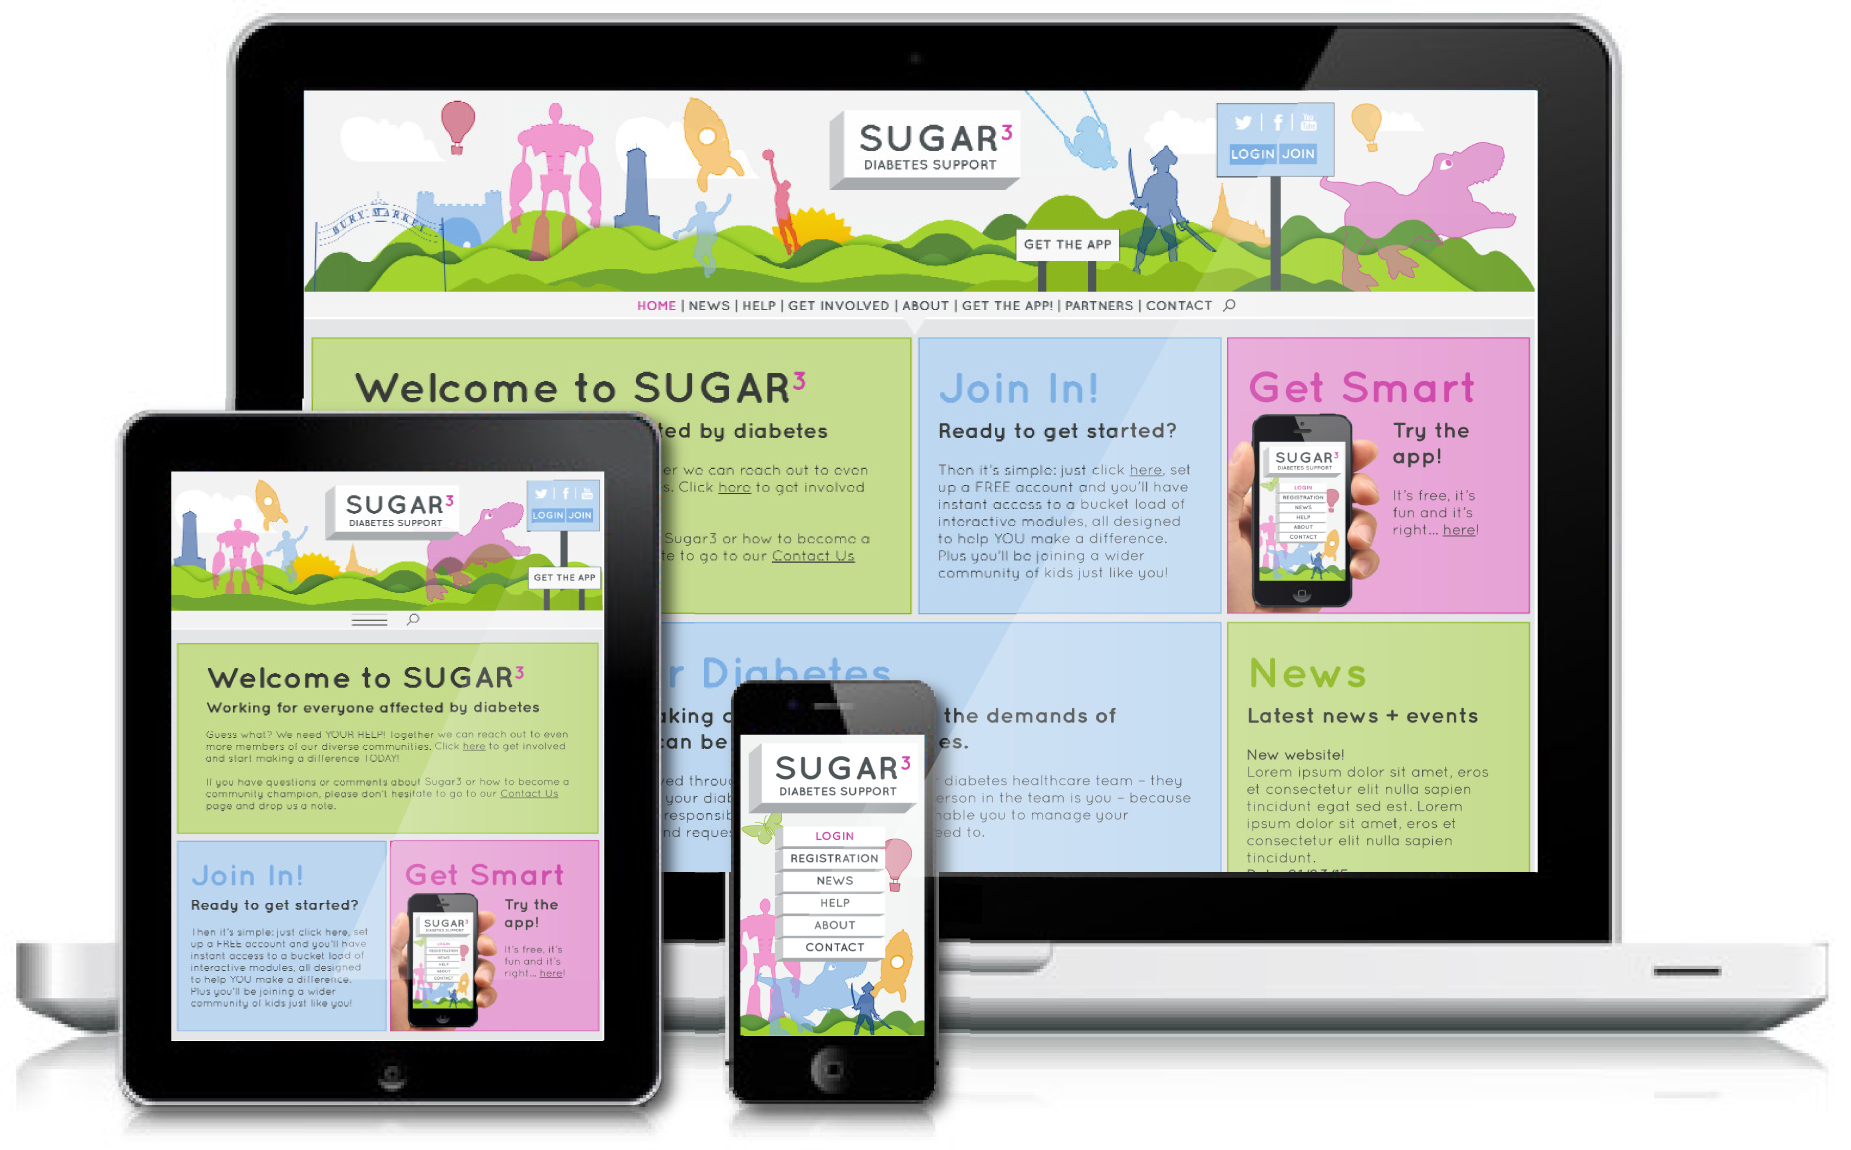 Sugar3 gets second place in the Nursing Standards Awards